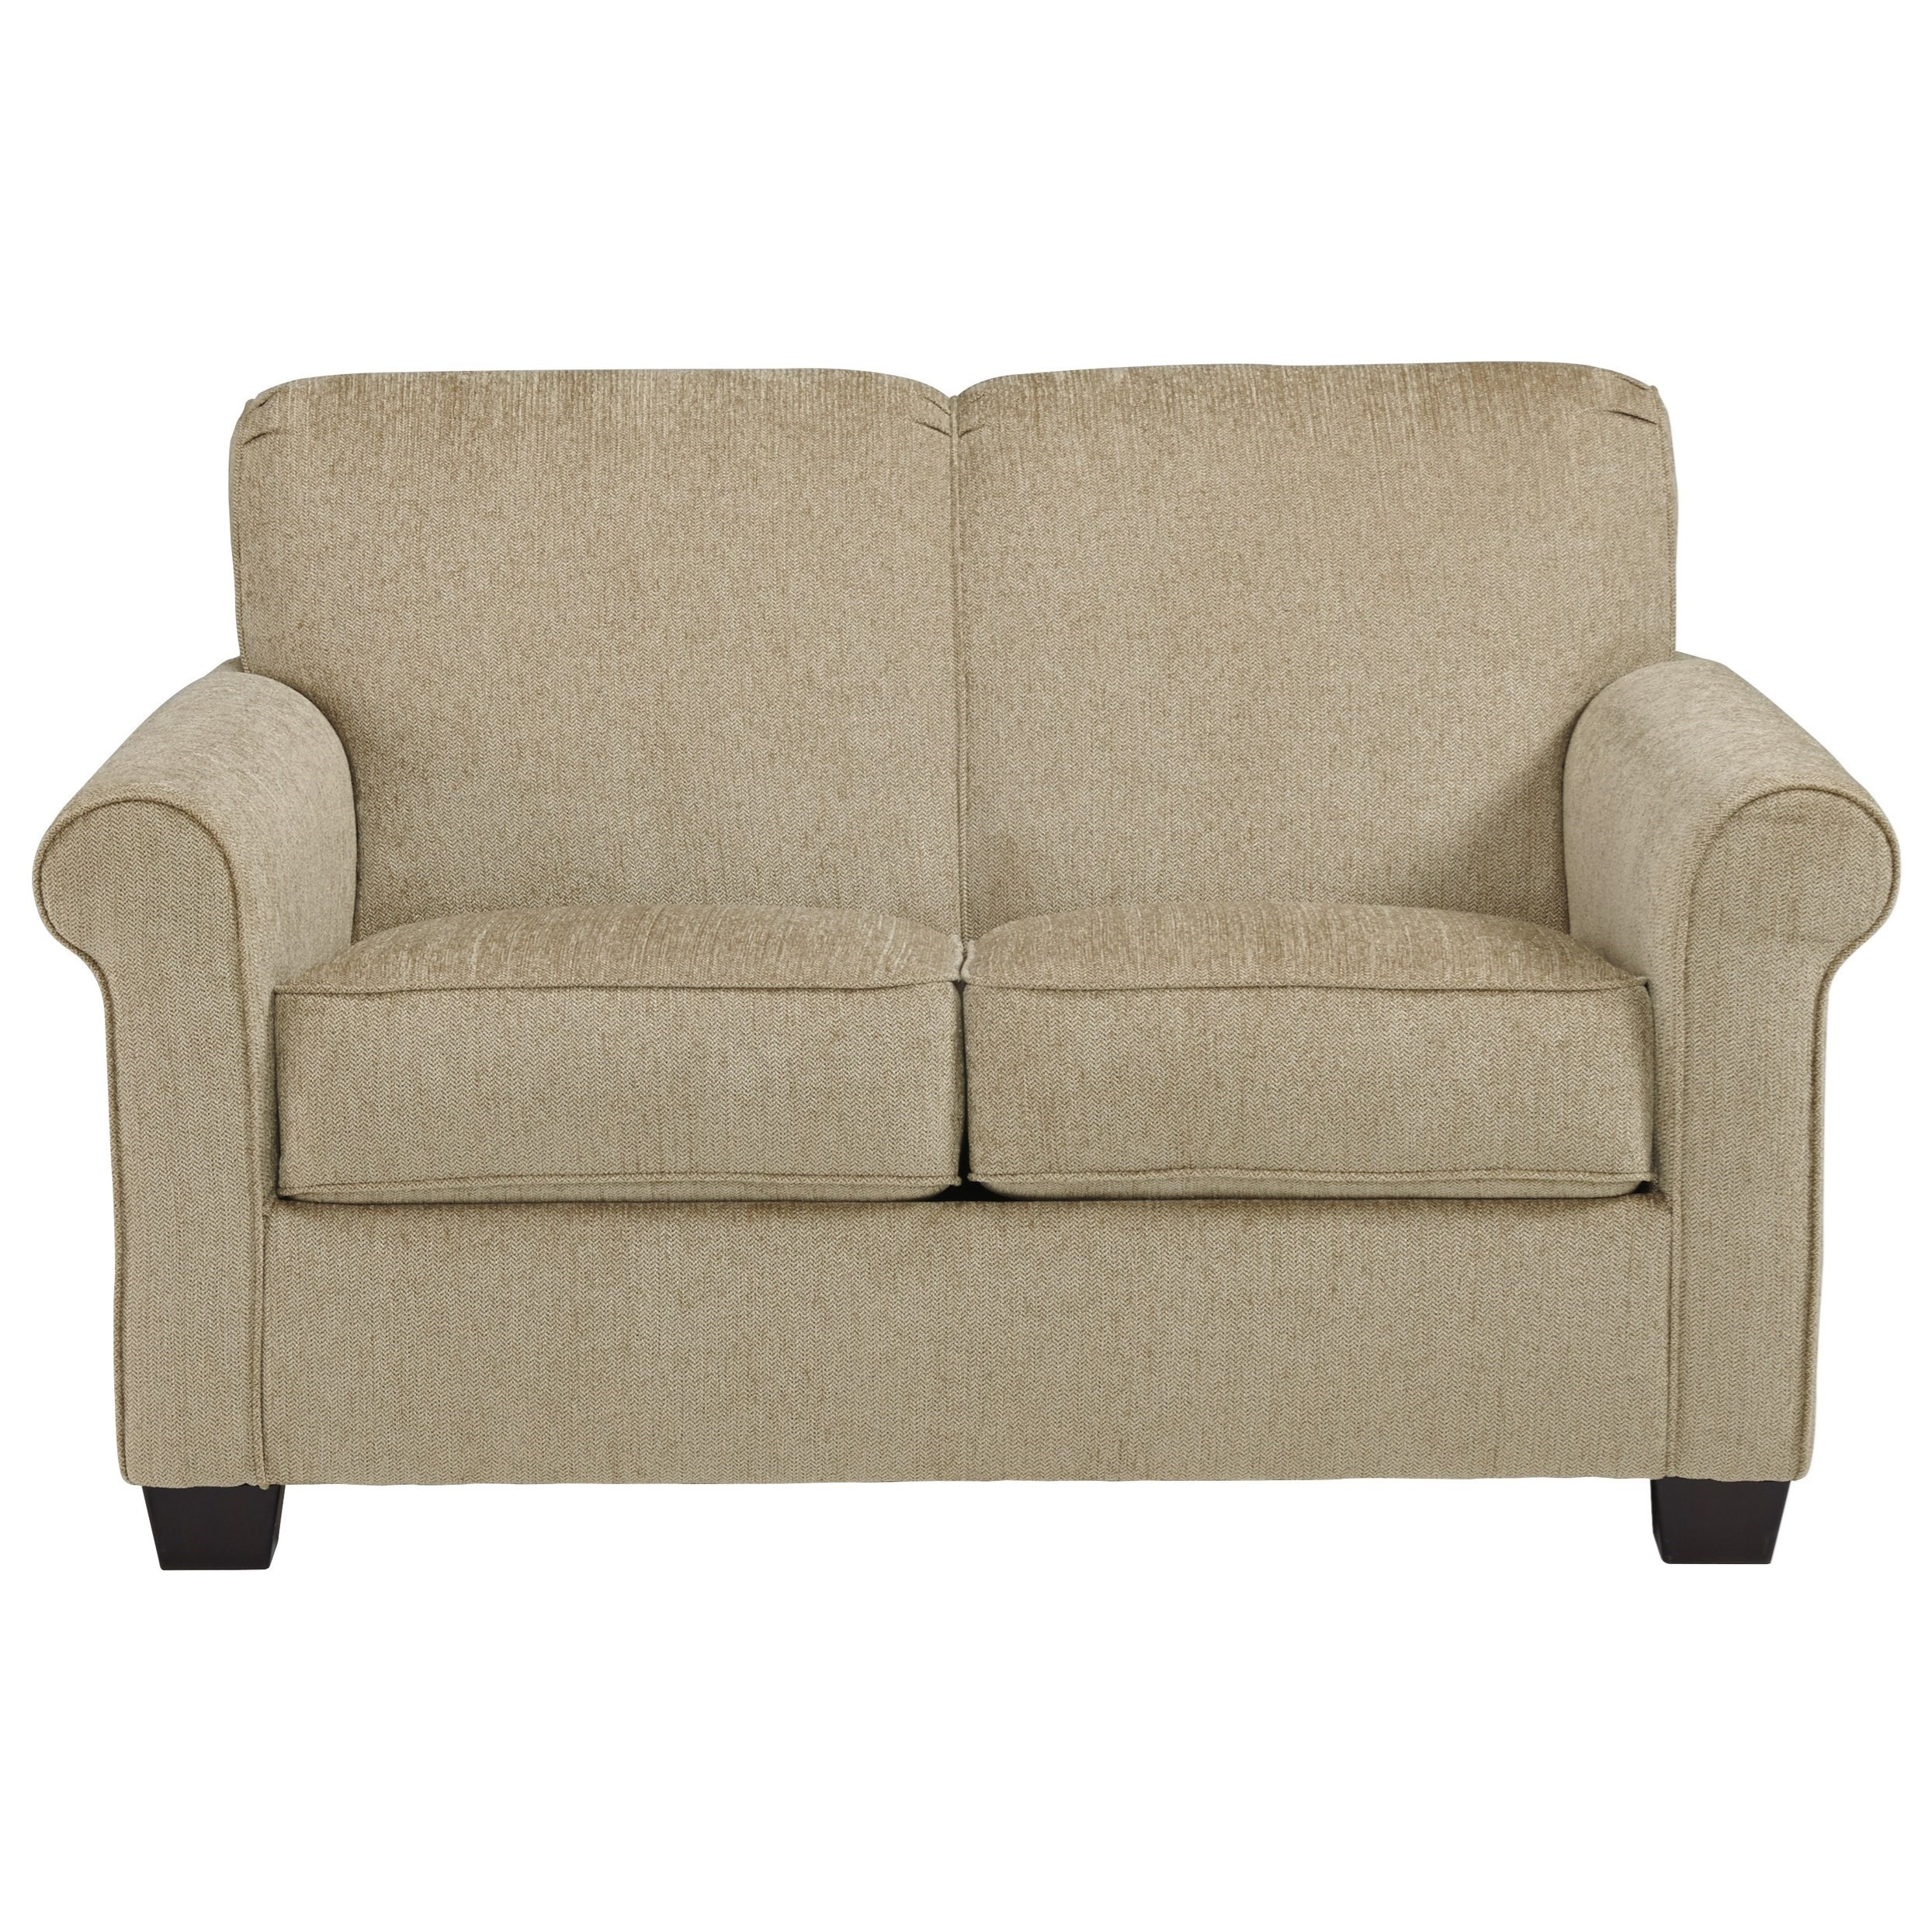 signature design by ashley cansler twin sleeper sofa with casual rh wayside furniture com lottie durablend twin sofa sleeper - ashley furniture lottie durablend twin sofa sleeper - ashley furniture